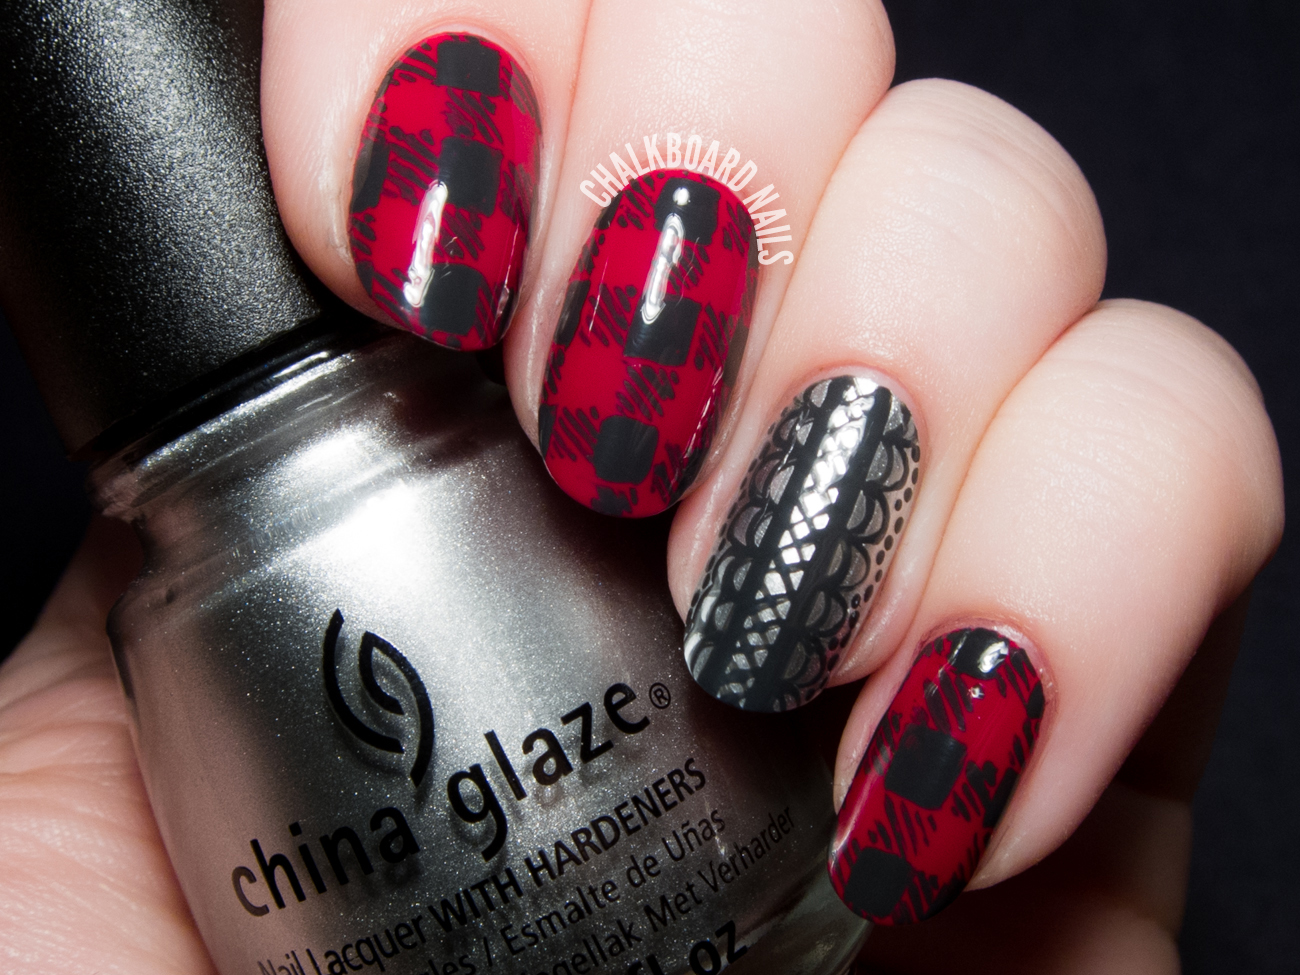 Flannel And Lace China Glaze Twinkle Collection Nail Art